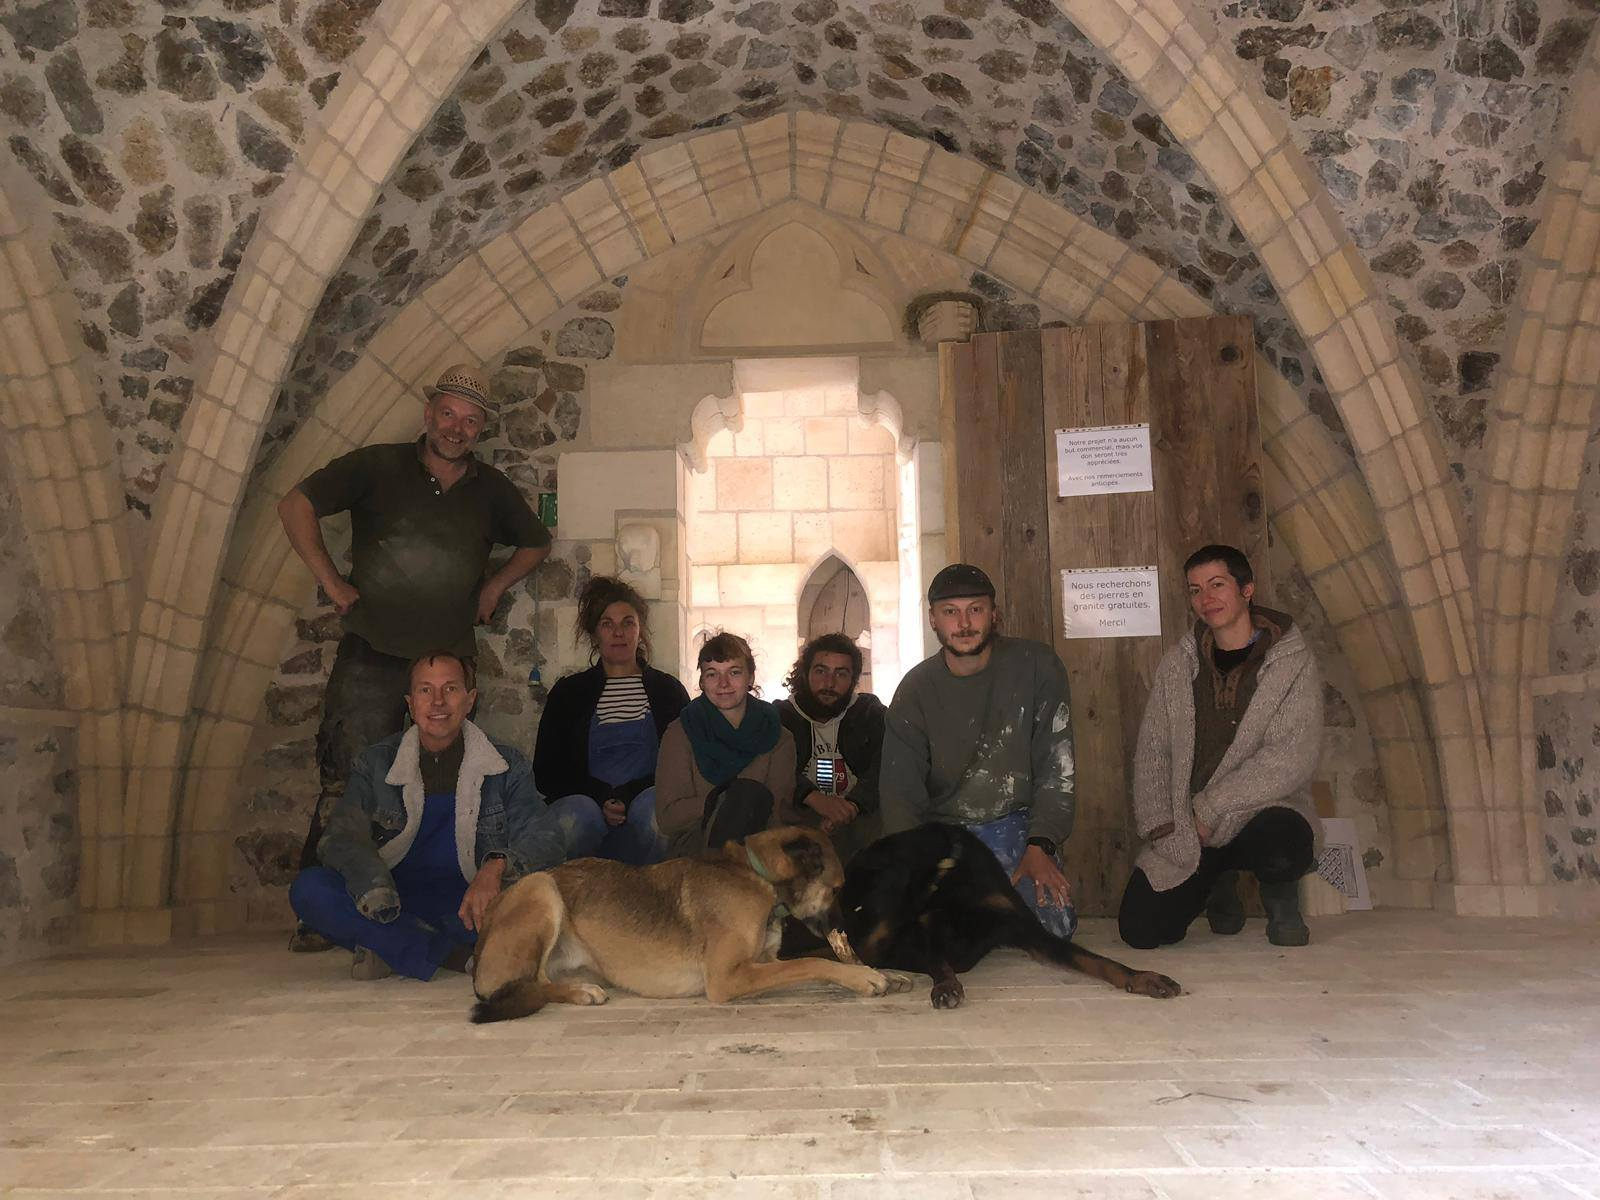 medieval building, volunteering, voluntouring, hospitality exchange, food and accommodation, team, construction